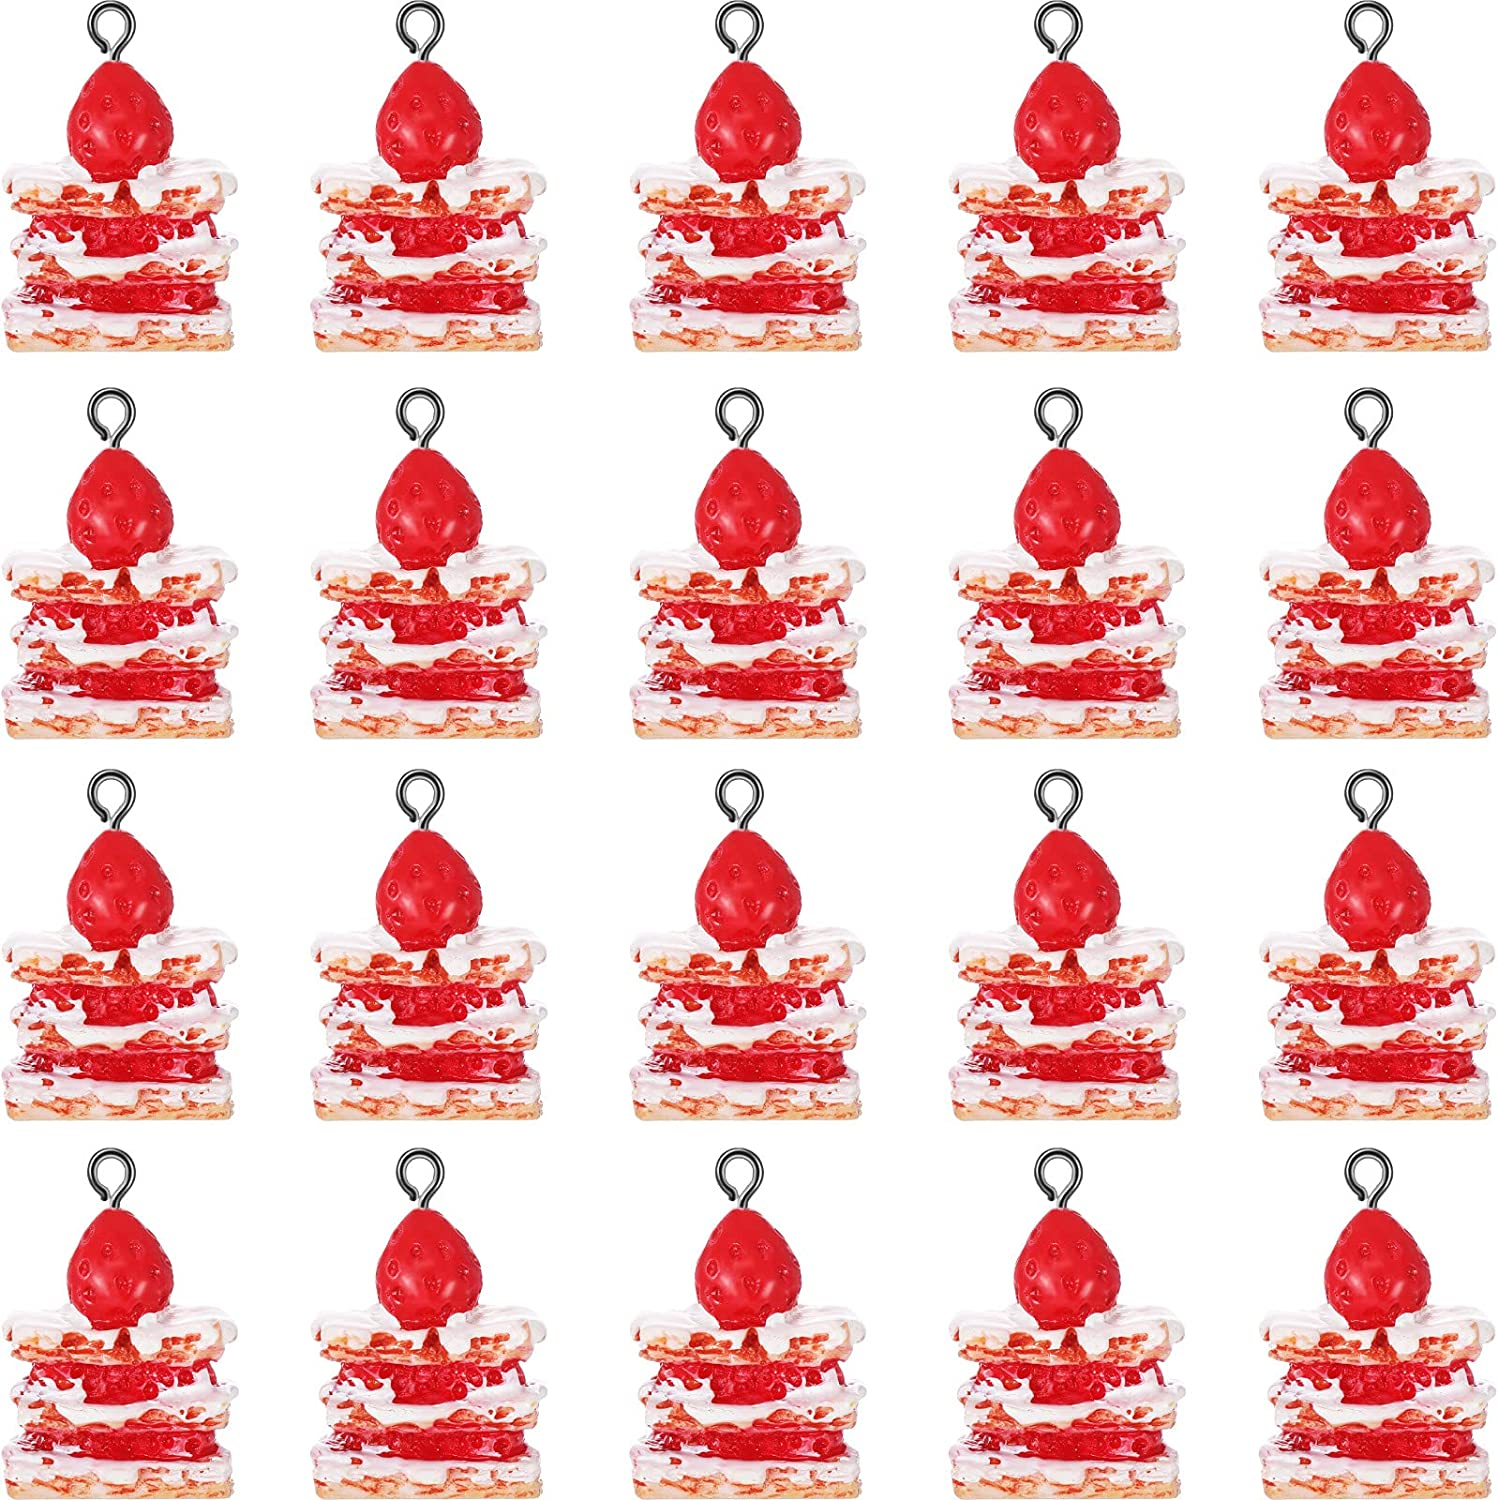 20 Pieces Strawberry Cake Pendant Charms Food Charms Resin Strawberry Cake Charms for DIY Earring Bracelet Necklace Food Charms Jewelry Making Supplies